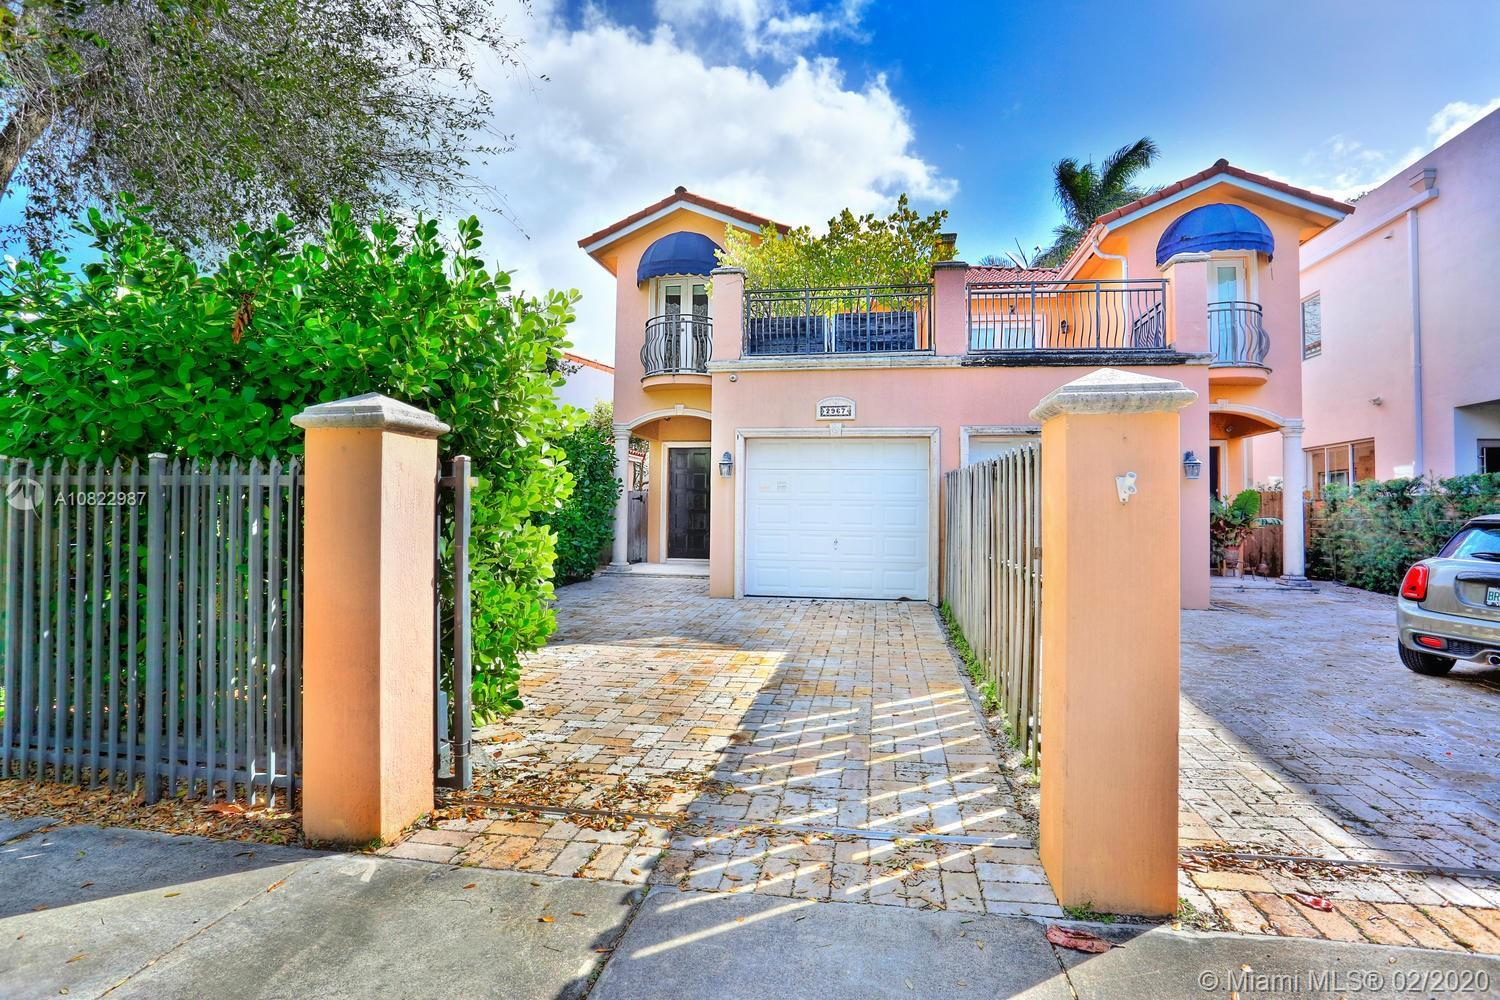 Lovely, gated townhouse on a quite street in Coconut Grove. Walk to the Grove village center's galle